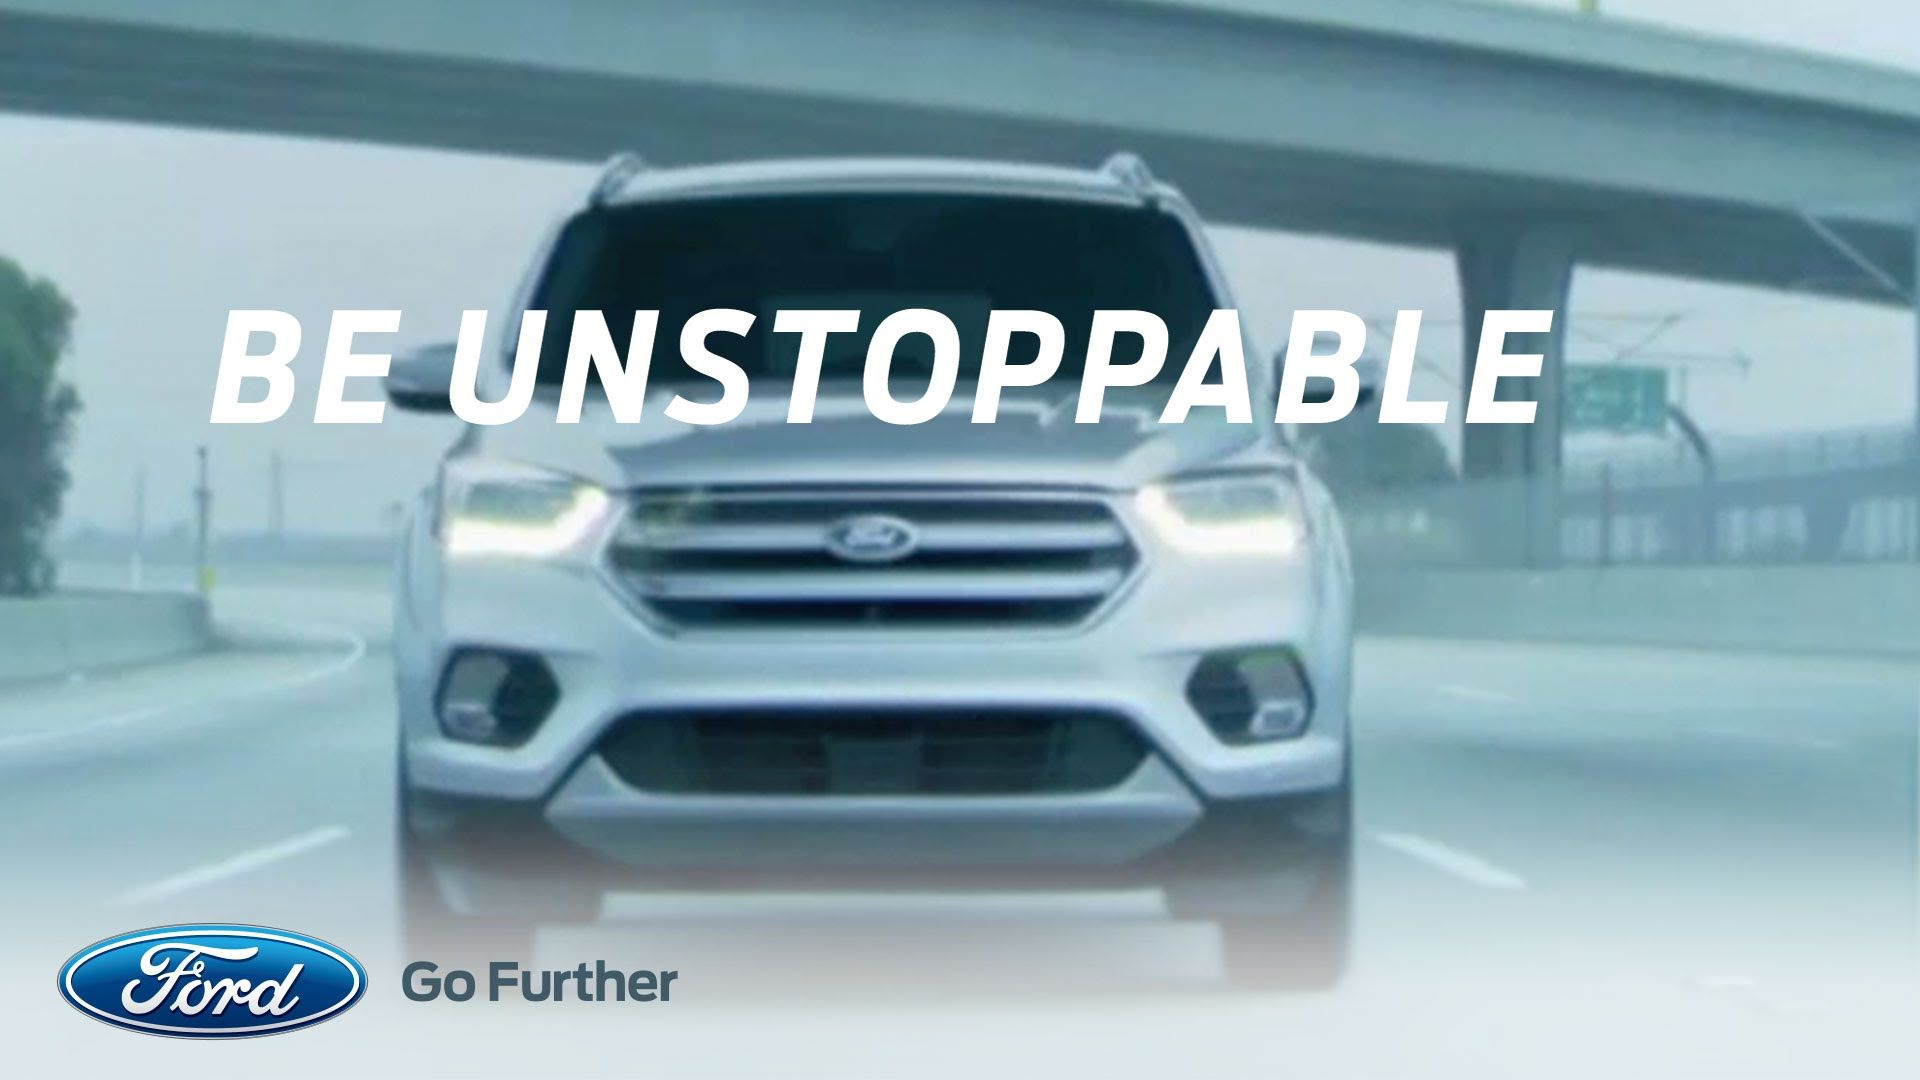 Ford Suvs We Are All Mvps Commercial Ford Ford Go Further